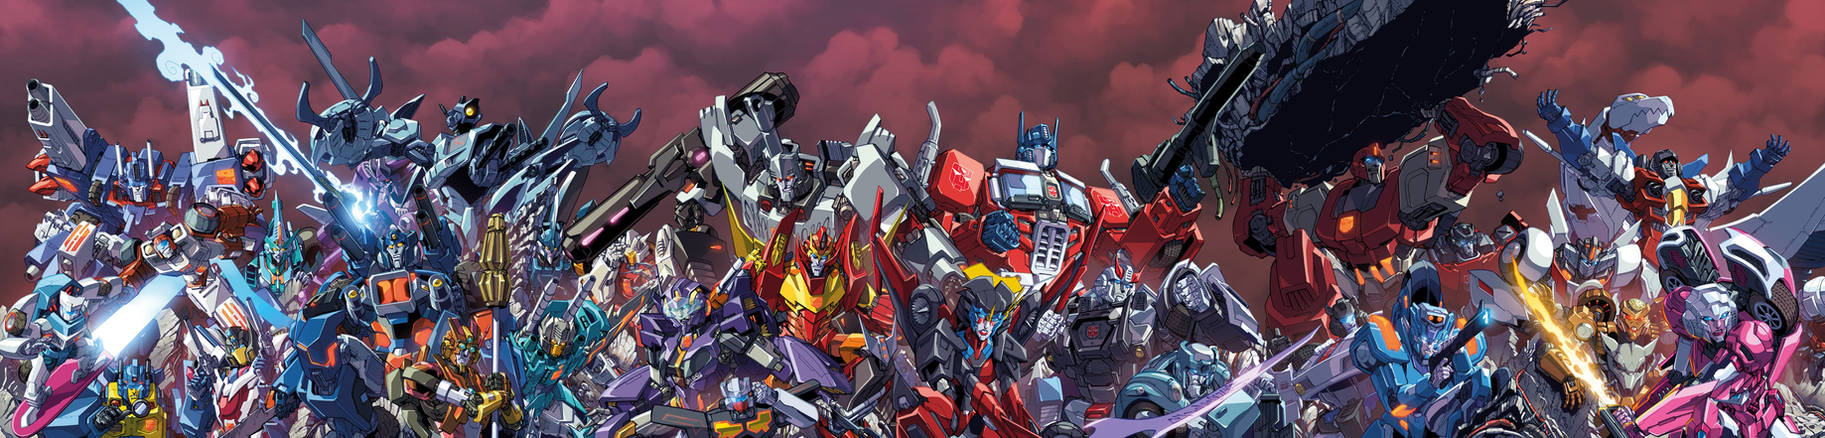 MTMTE RID 50 cover colors